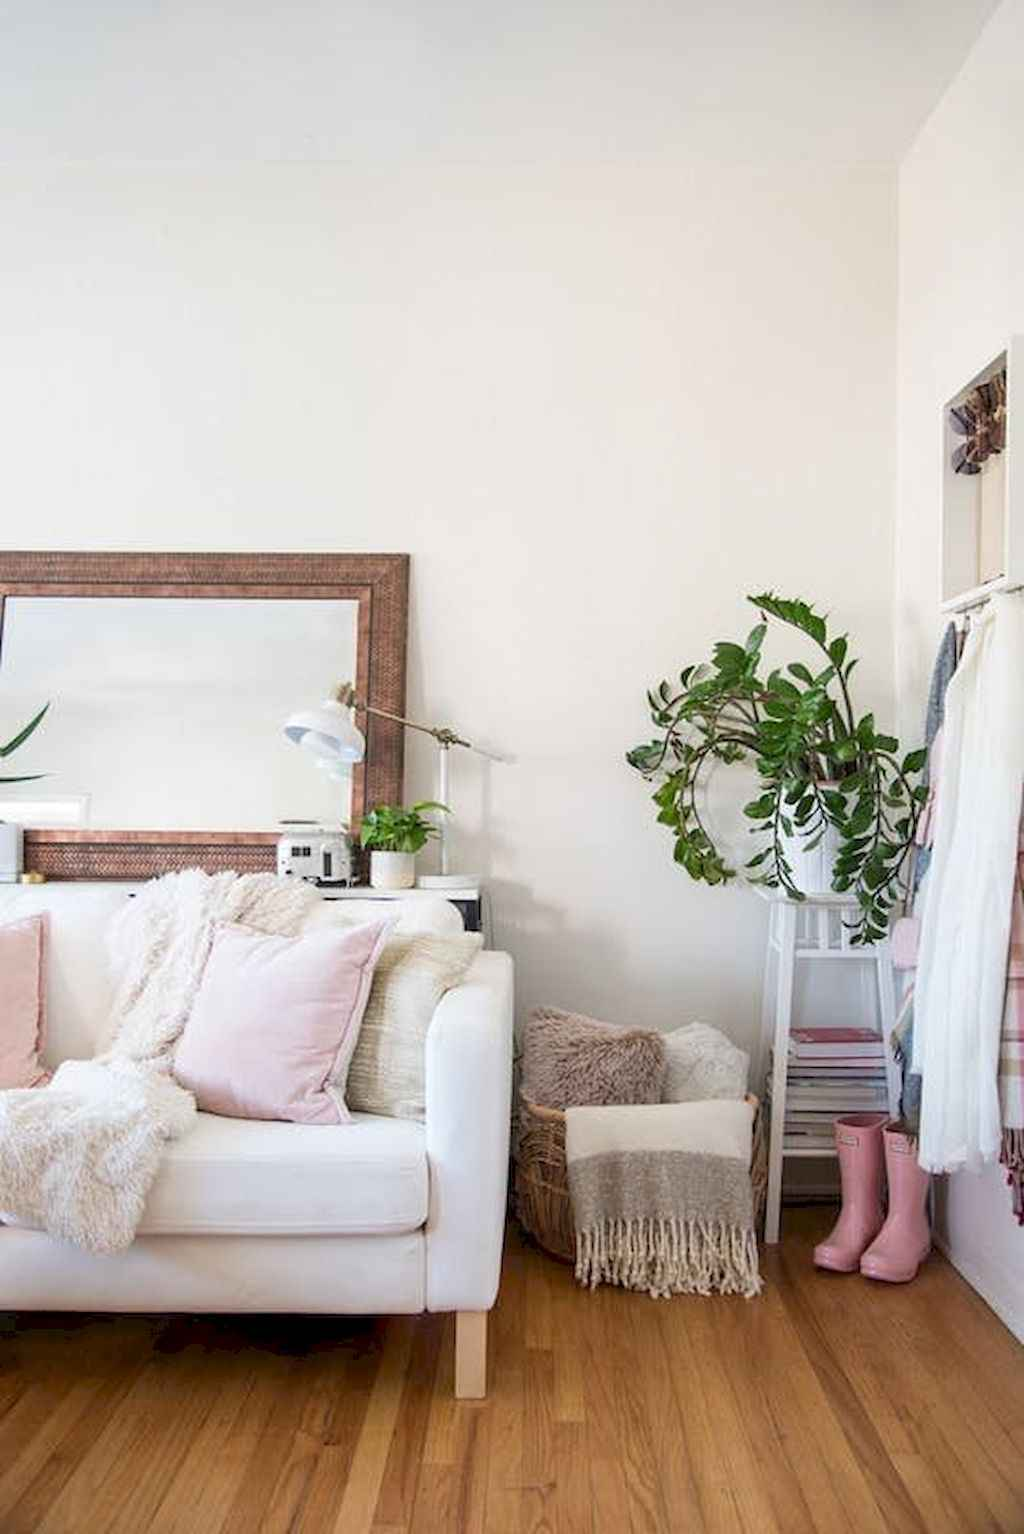 Clever college apartment decorating ideas on a budget (22)